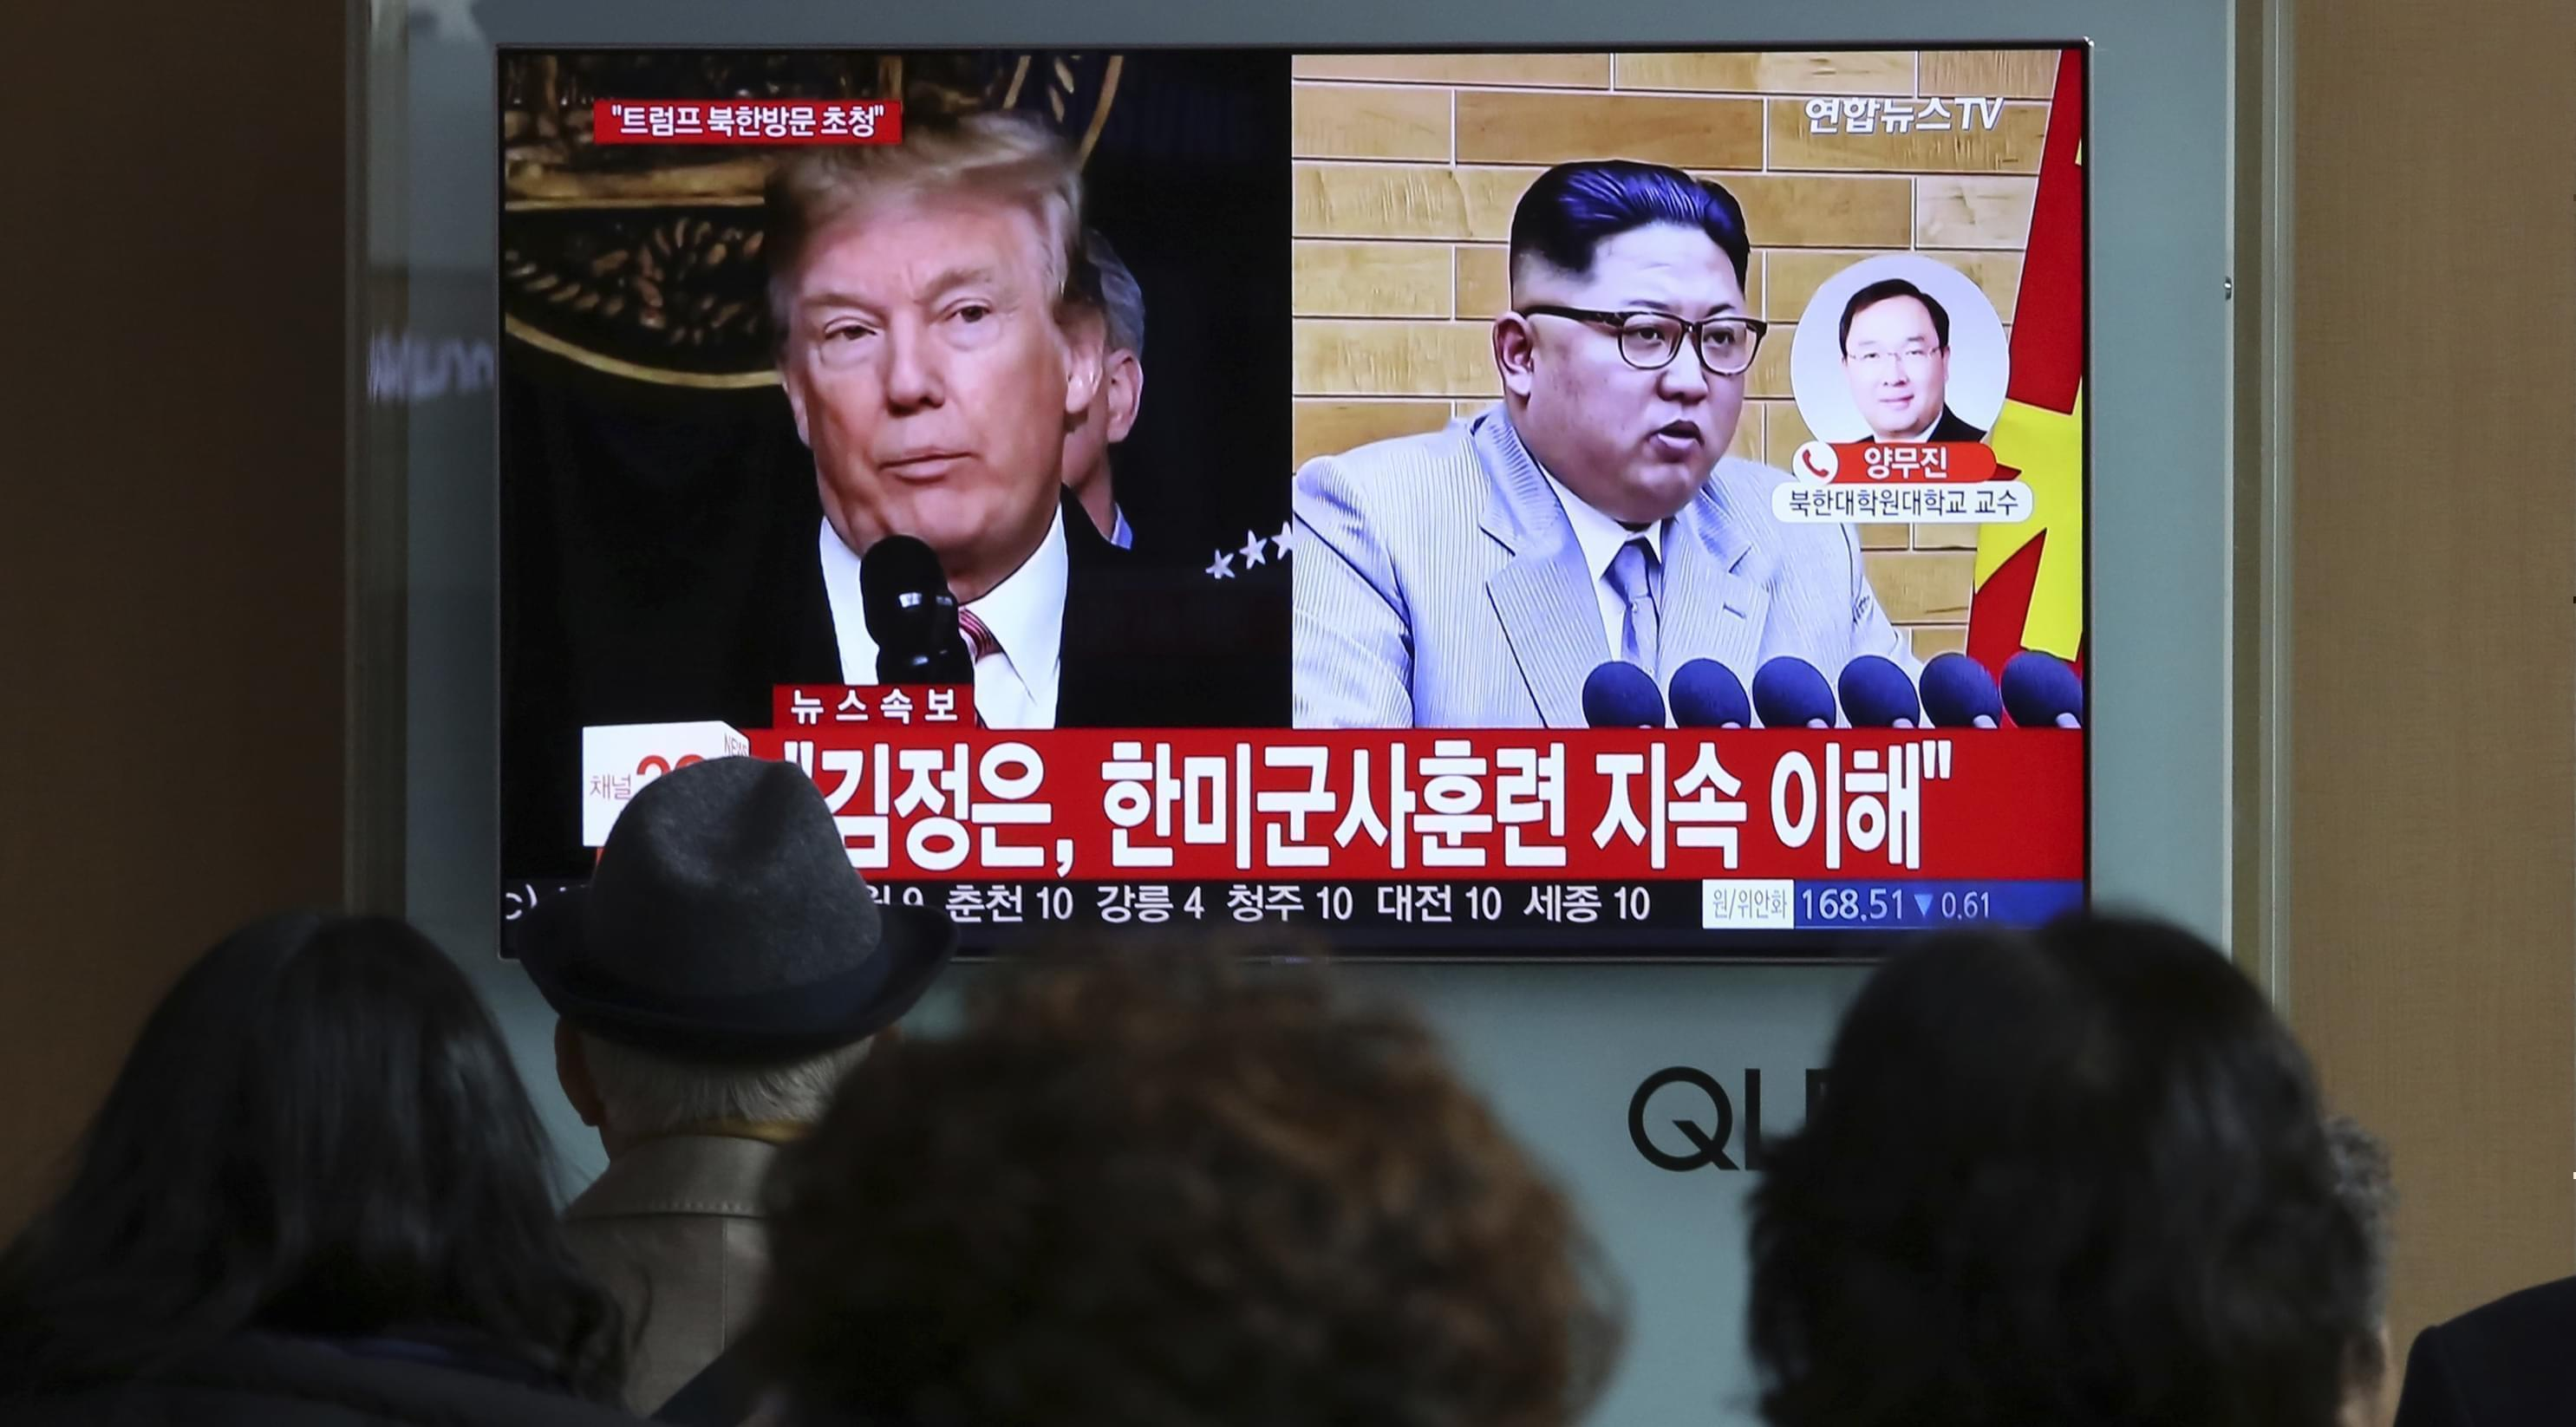 """People watch a TV screen showing North Korean leader Kim Jong Un and U.S. President Donald Trump at the Seoul Railway Station in Seoul, South Korea, Friday, March 9.The headlines on the TV screen reads: """" Kim Jong Un understands that the routine"""